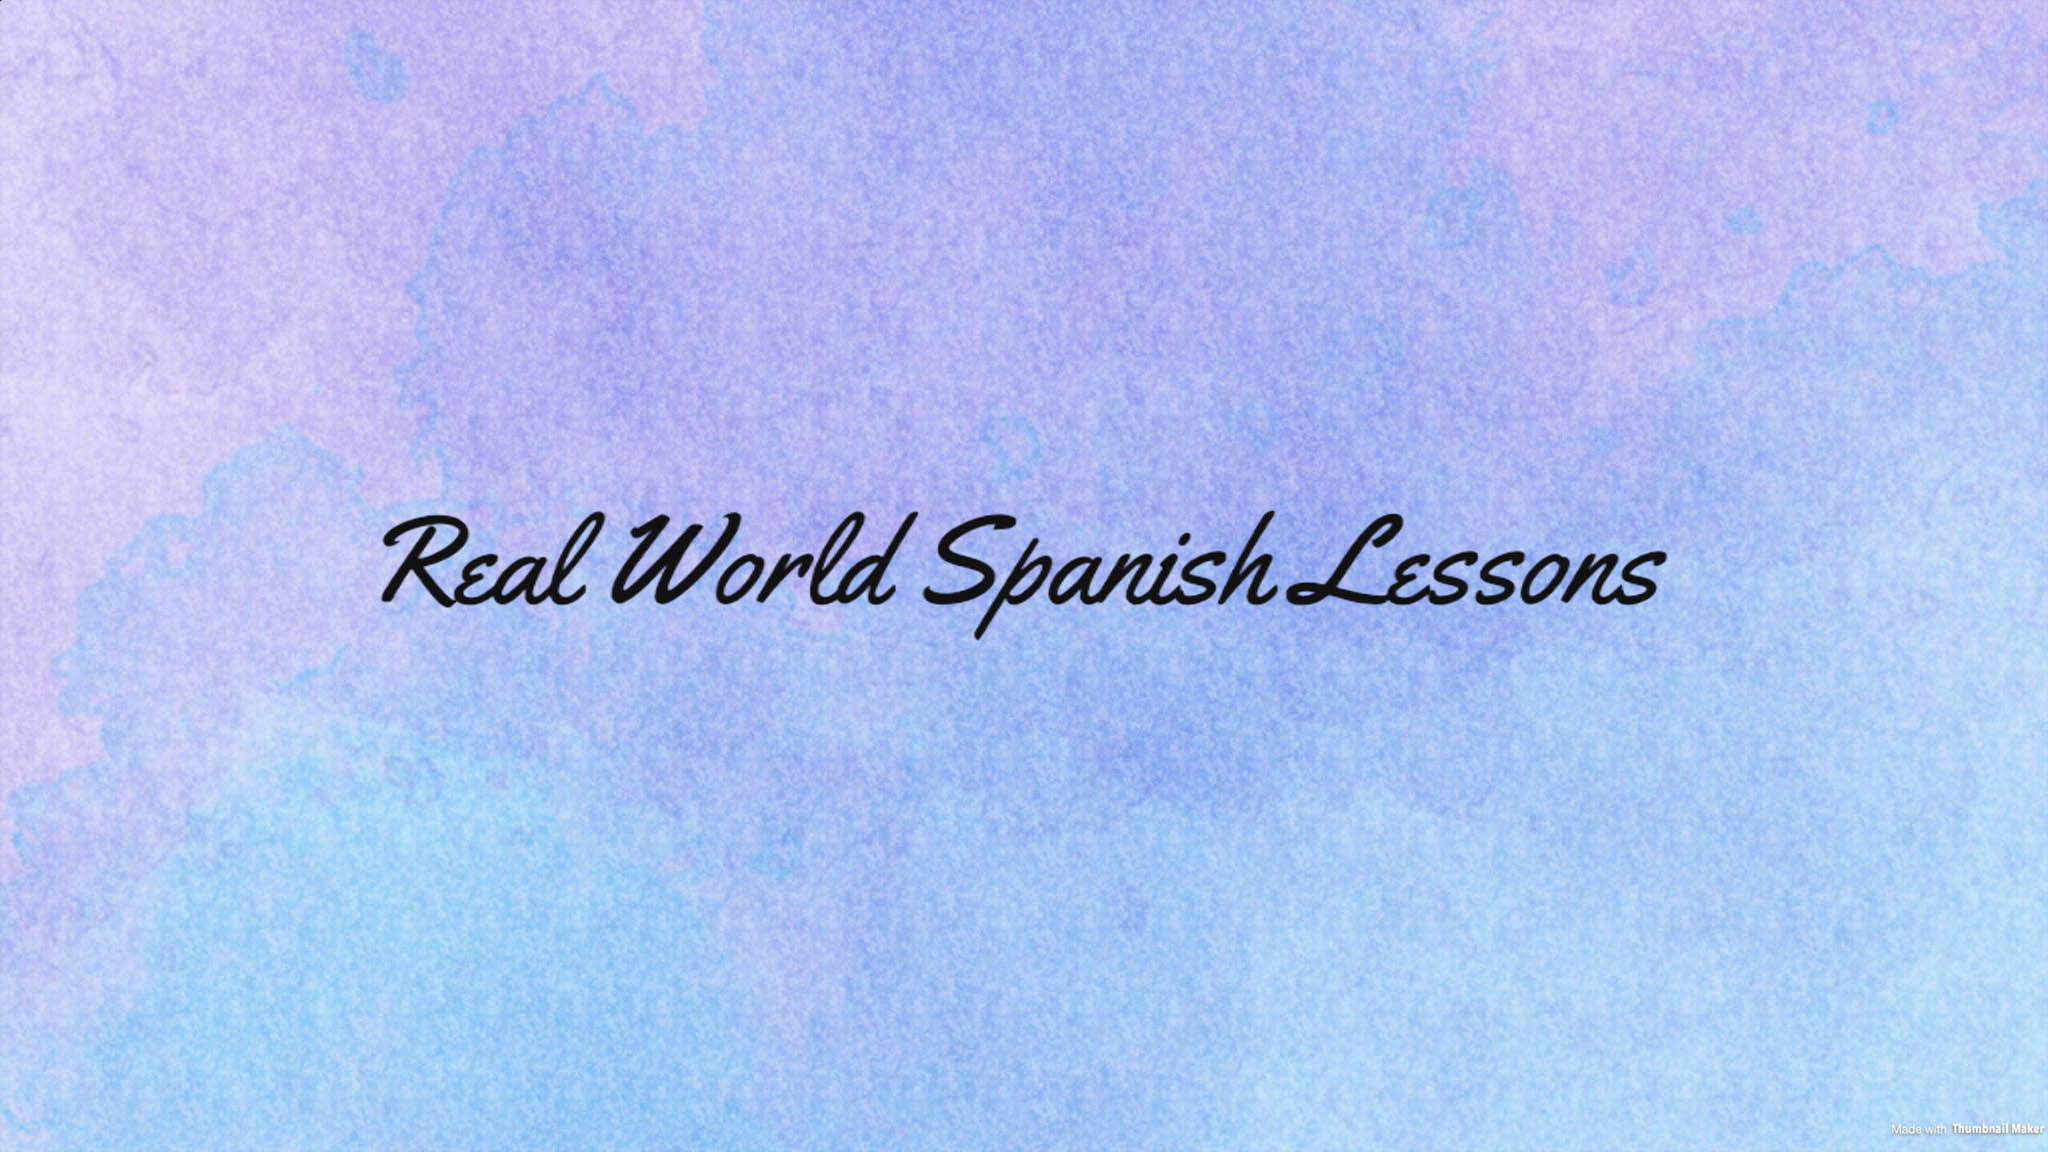 Real World Spanish Lessons